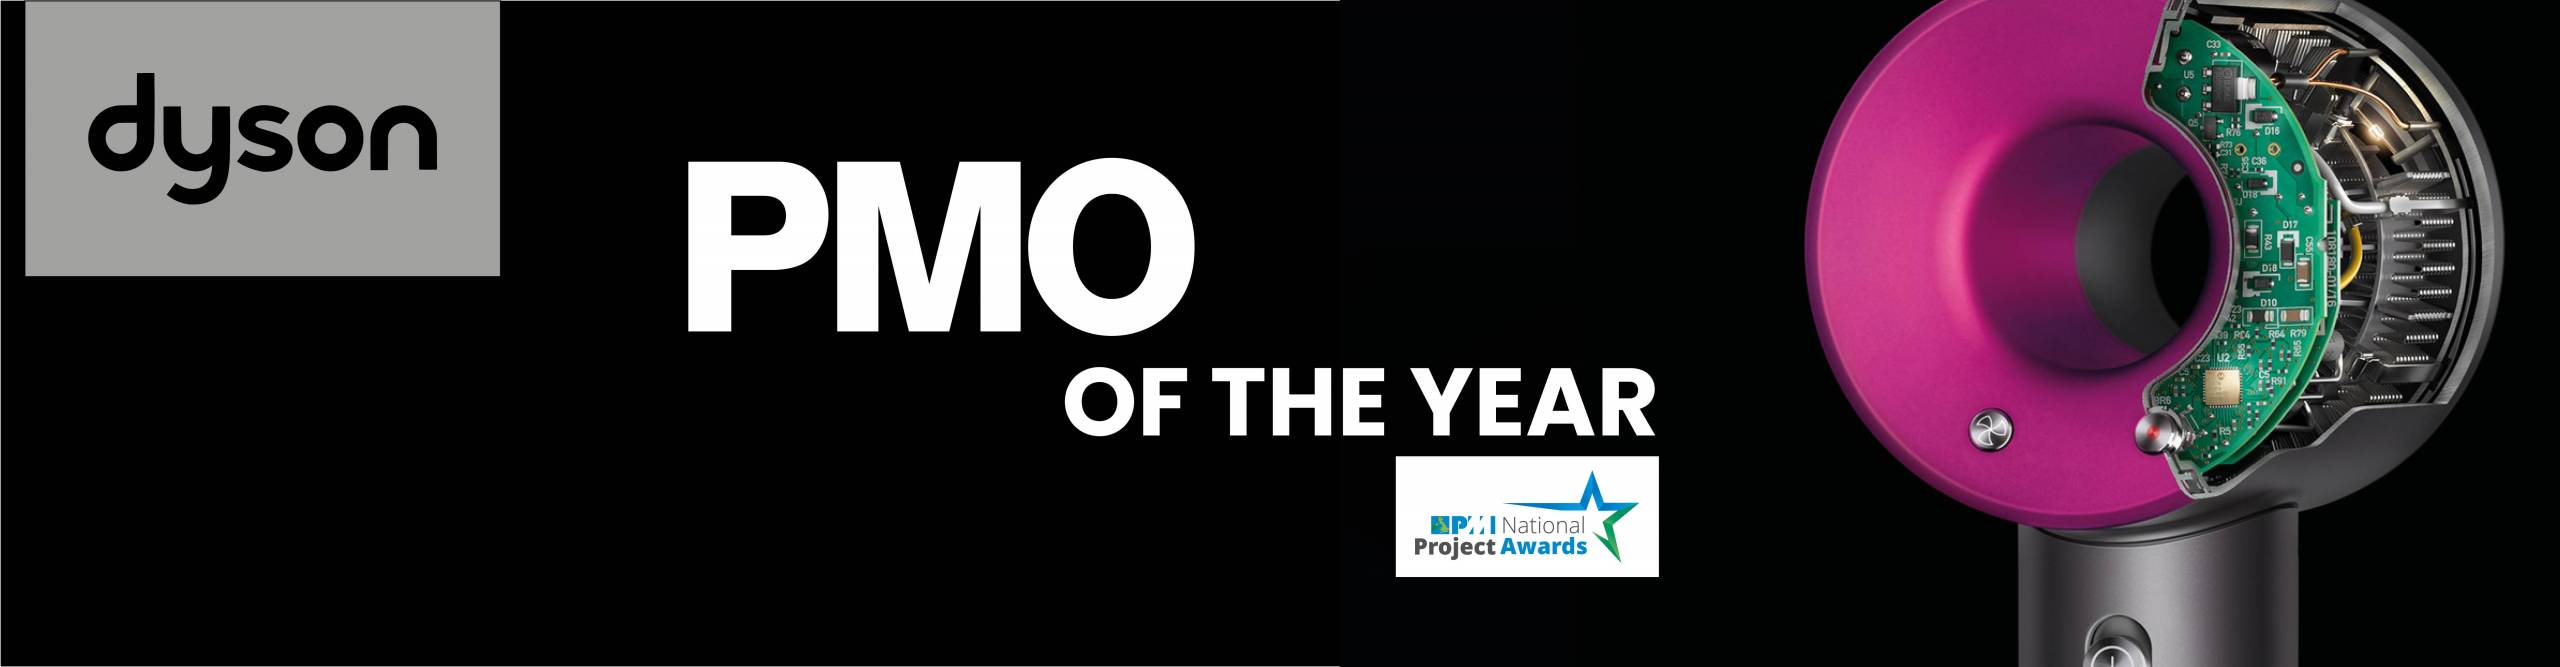 Dyson | Winner of PMO of the Year 2019 - PMI National Awards | Case Study